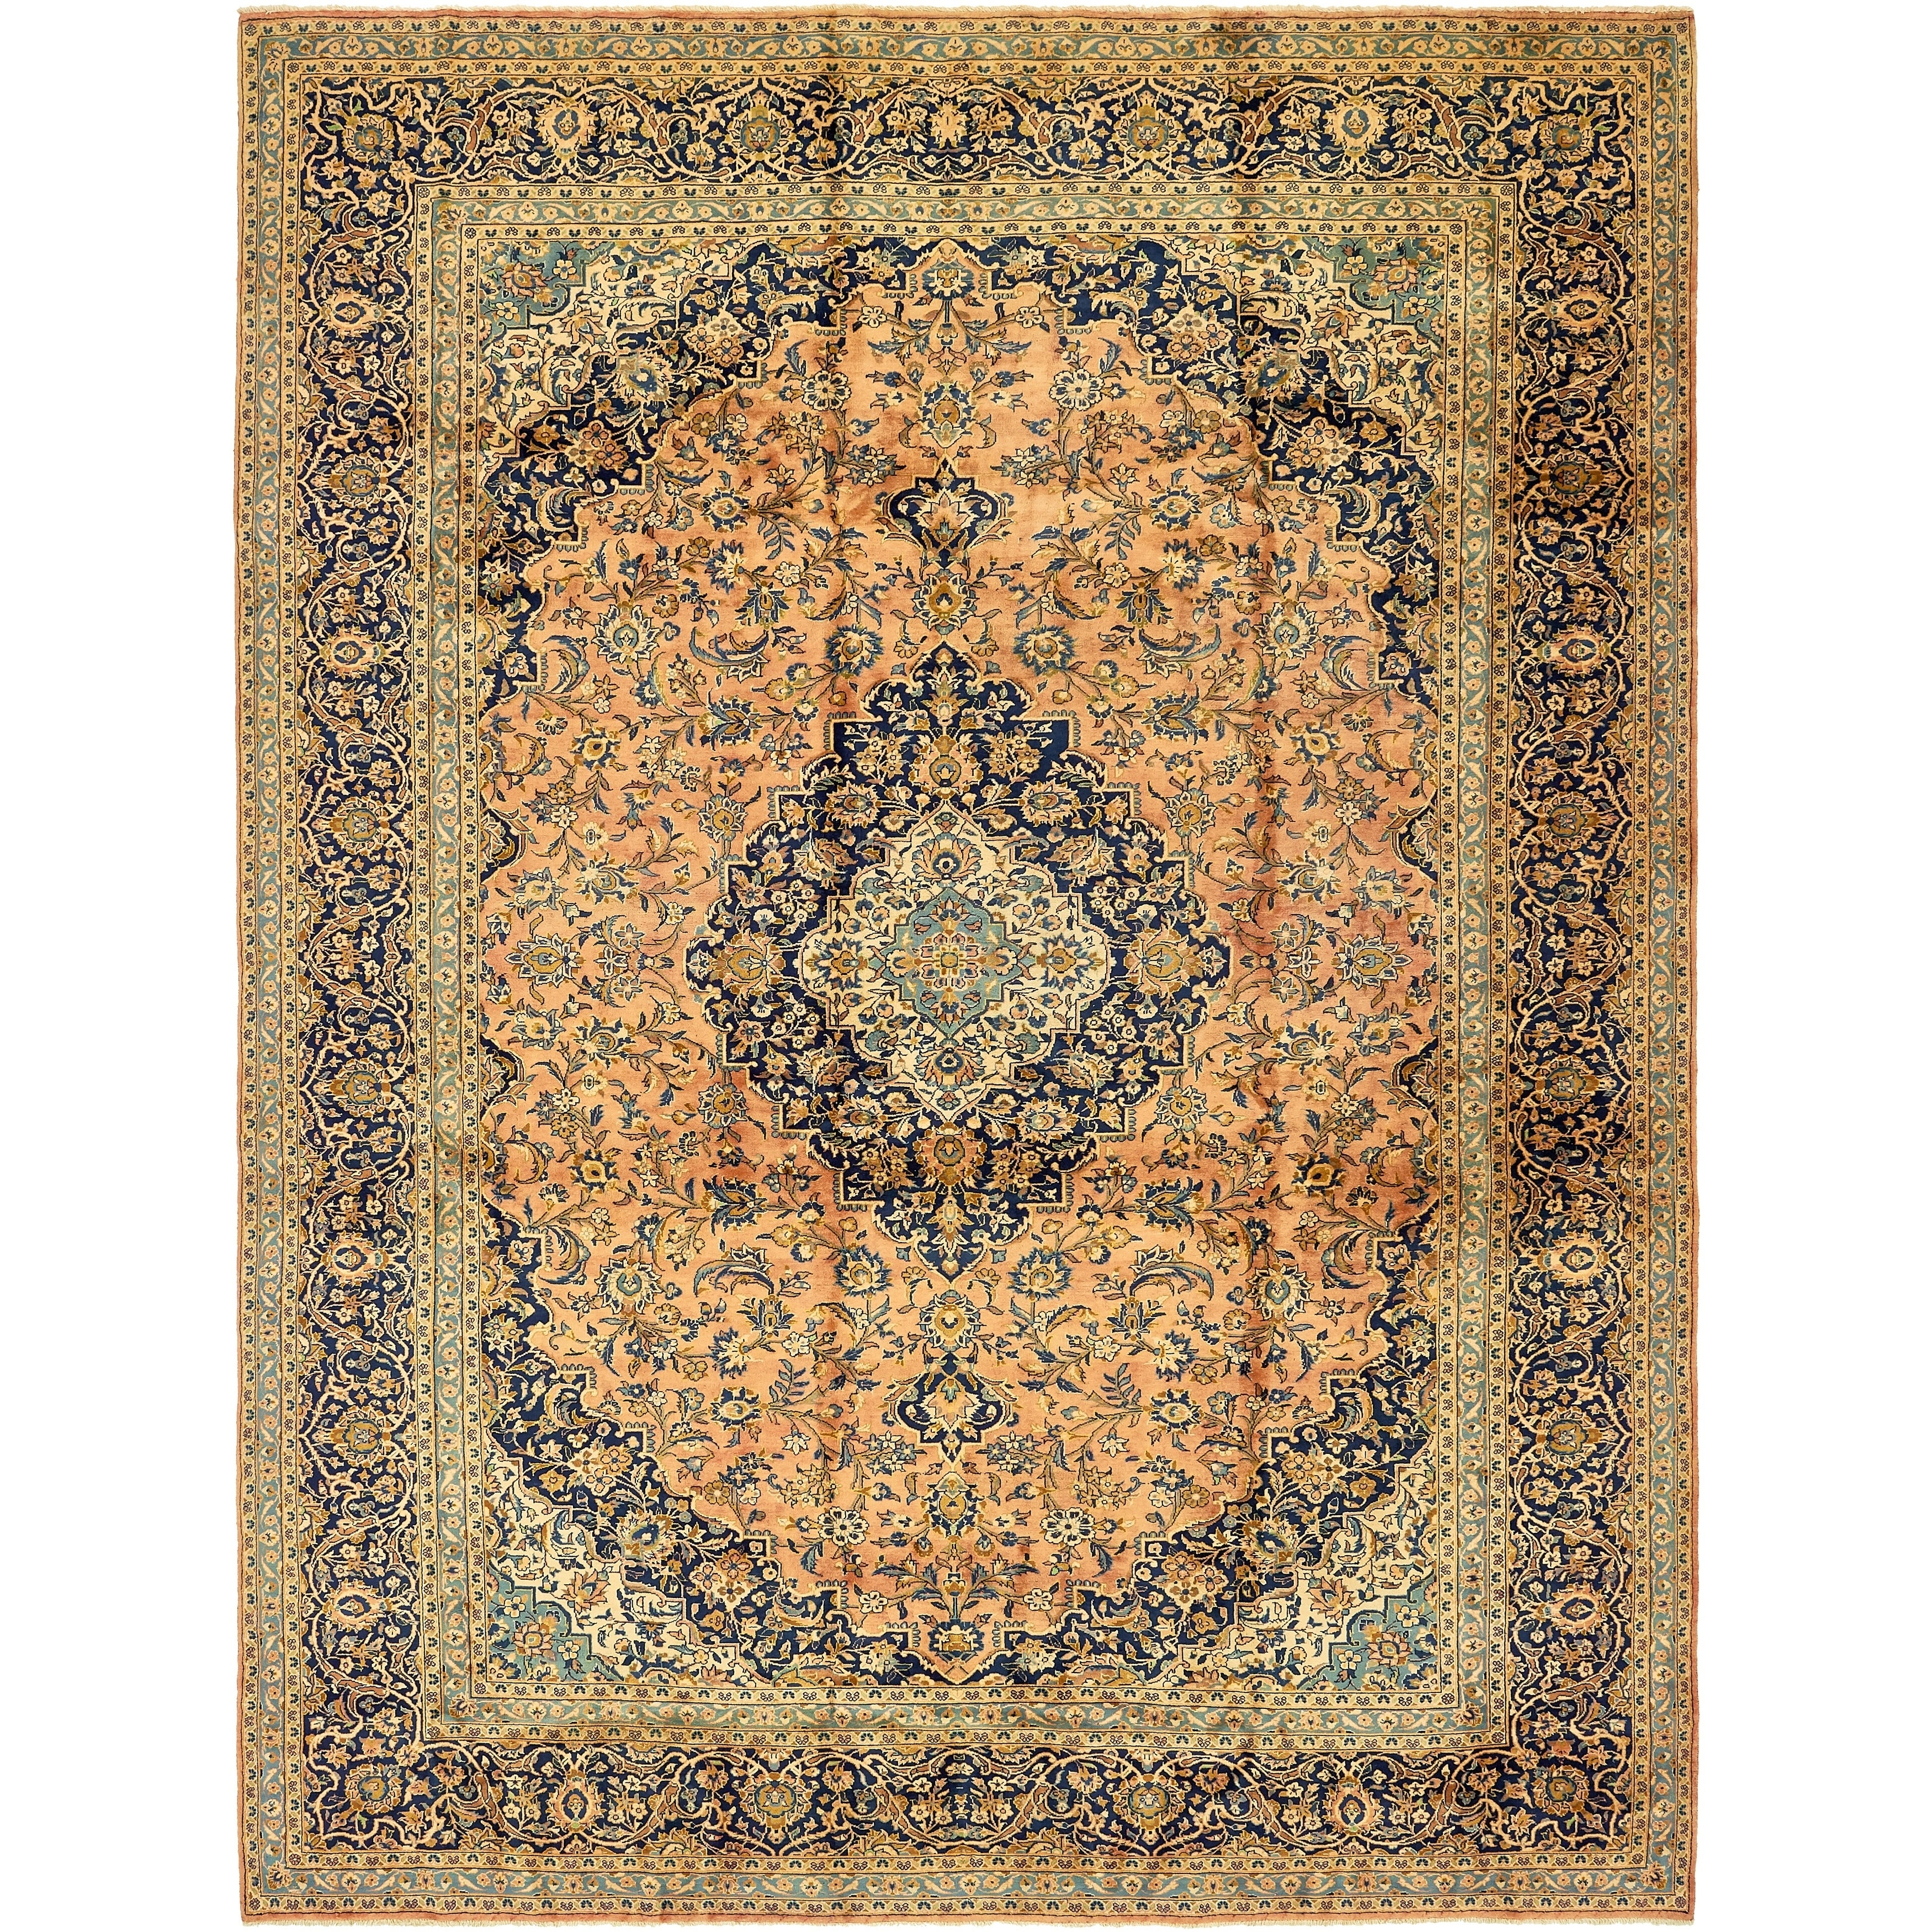 Hand Knotted Kashan Semi Antique Wool Area Rug - 9' 9 x 13' 4 (peach - 9' 9 x 13' 4)